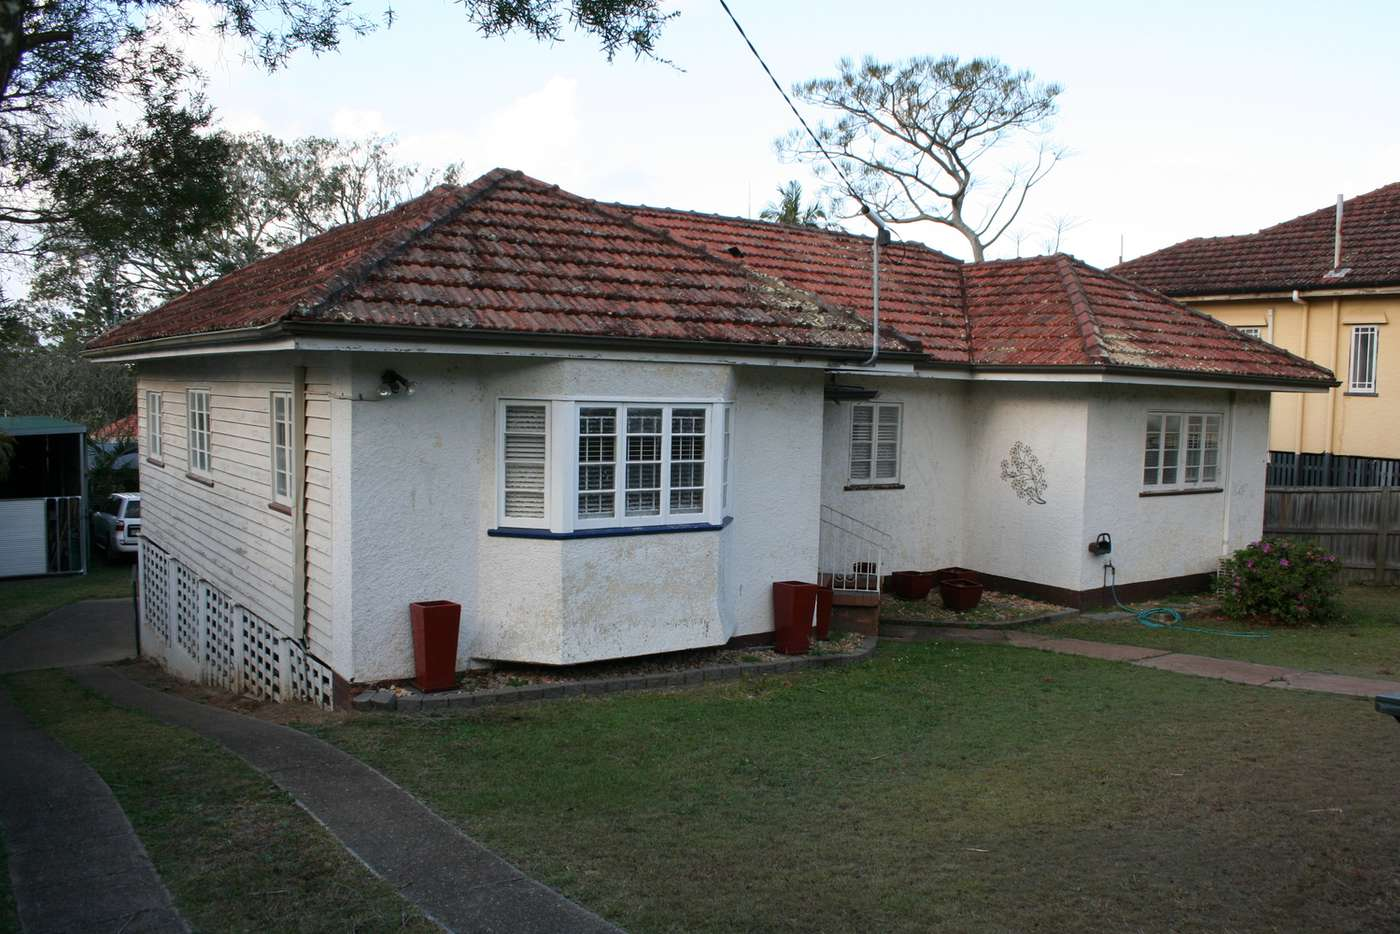 Main view of Homely house listing, 24 Benbow Street, Tarragindi QLD 4121